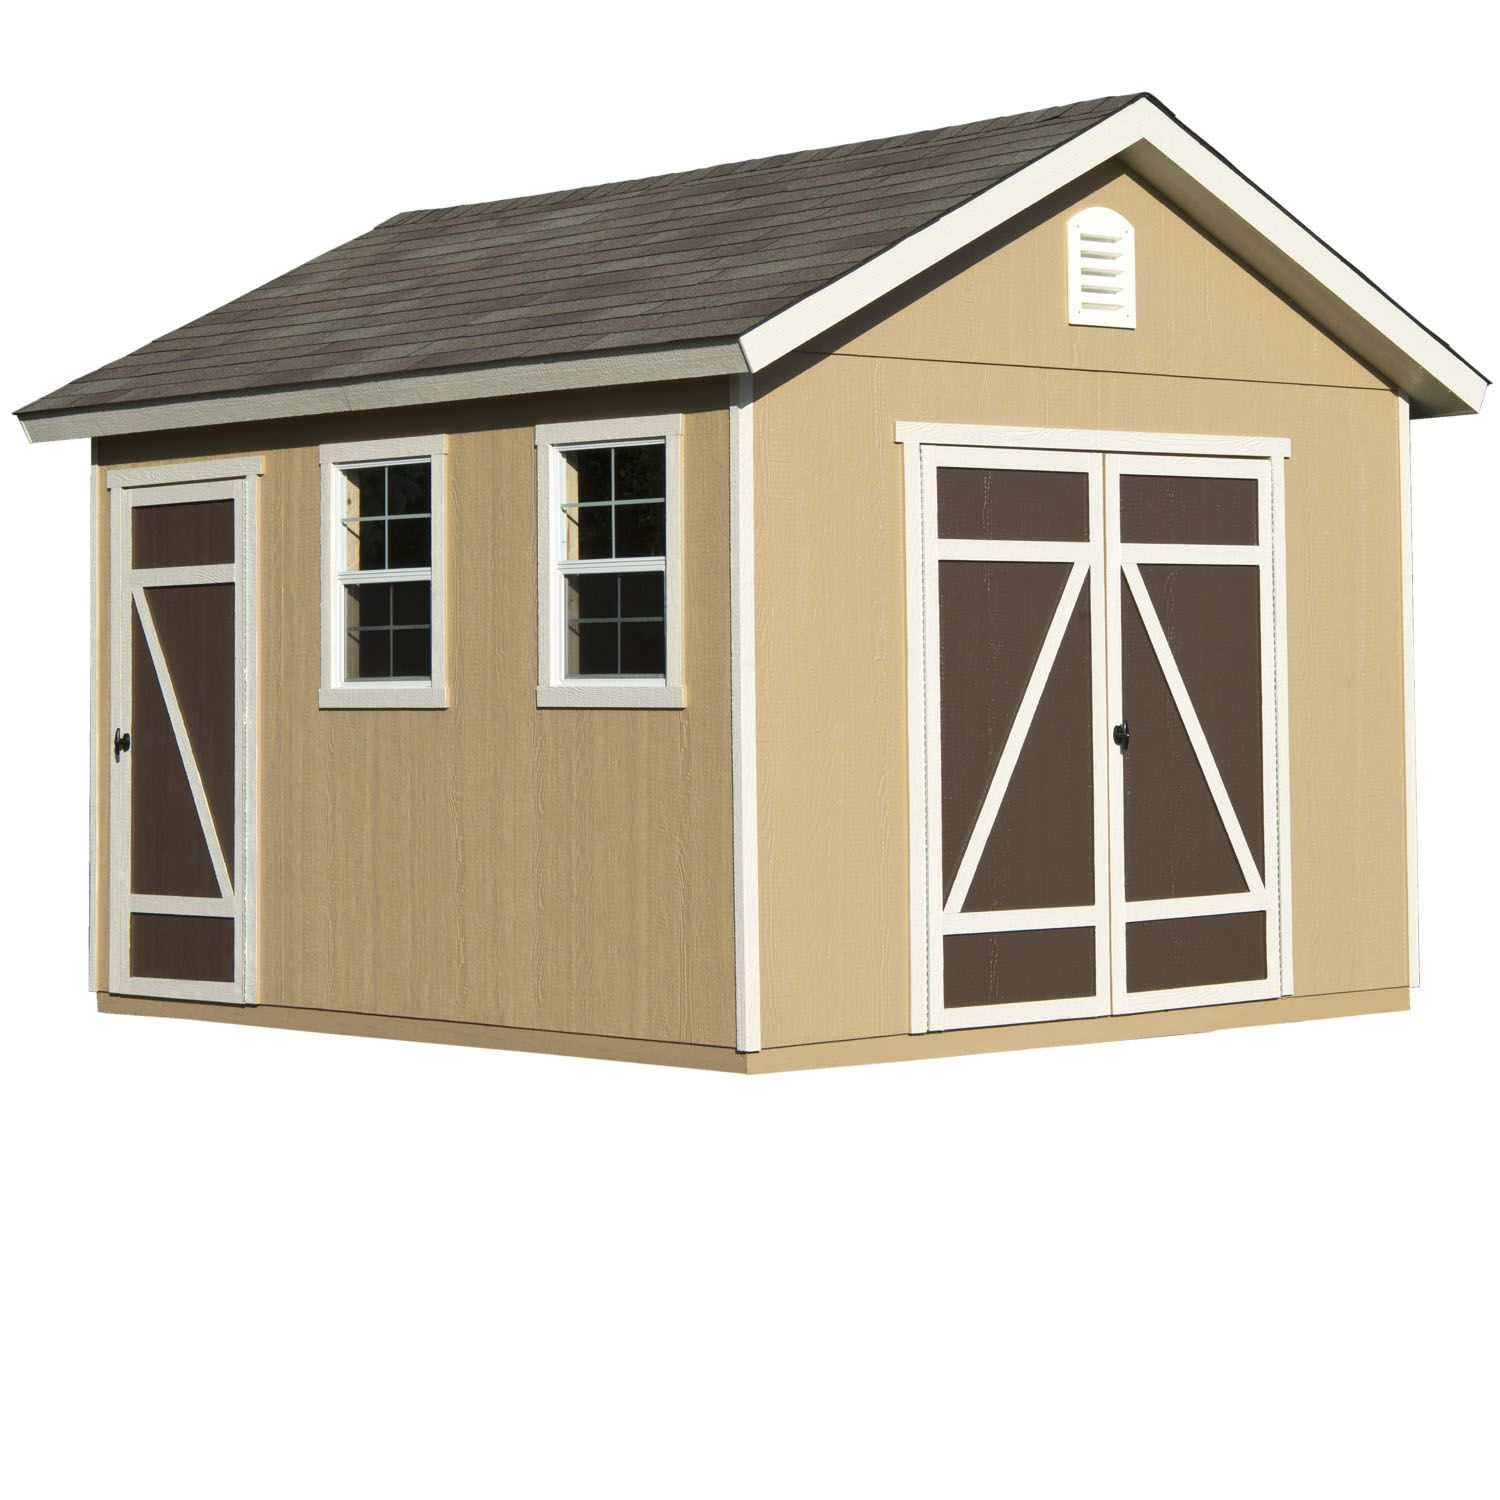 Hillsdale 10x12 shed